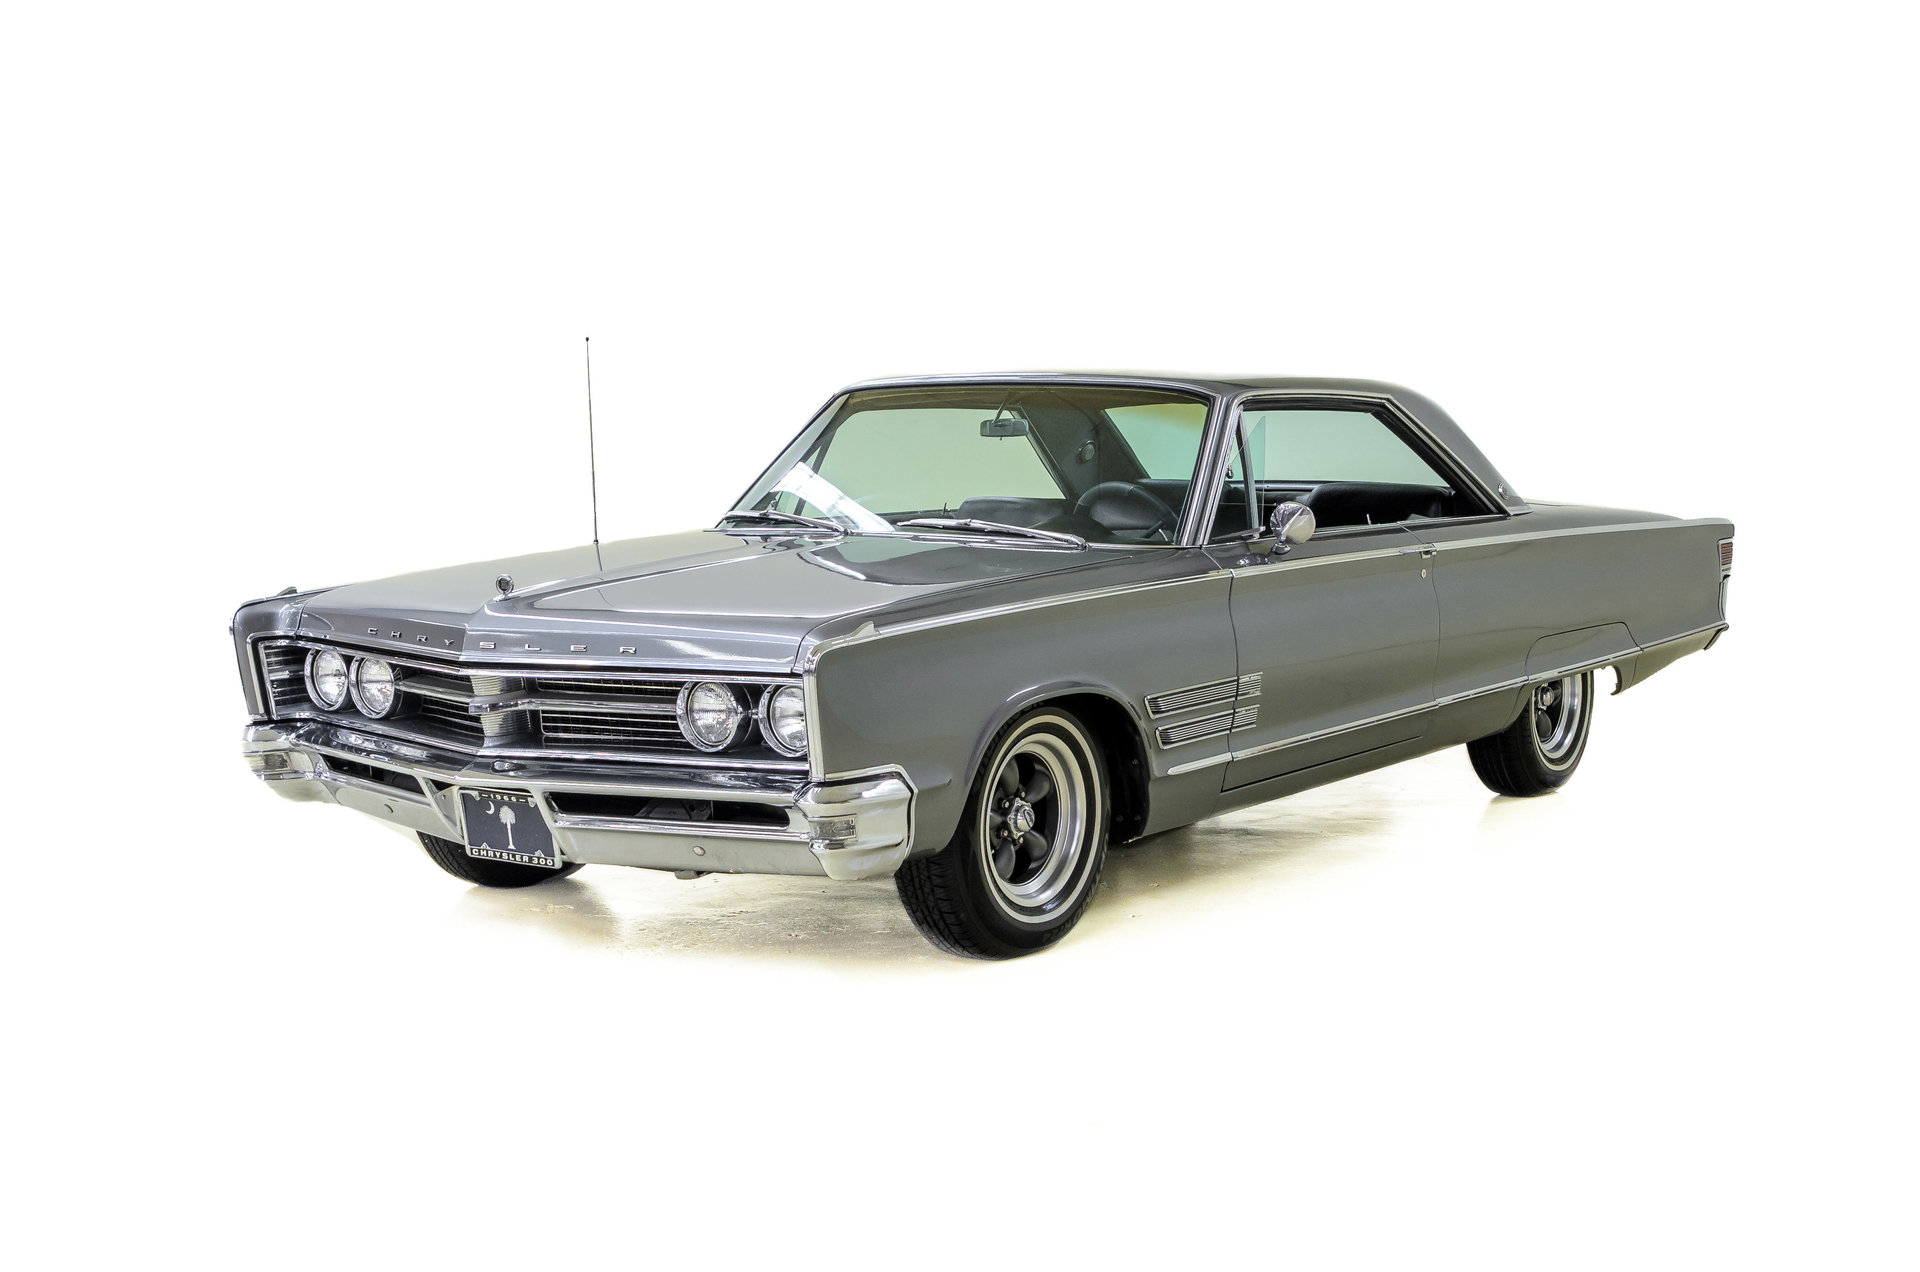 6581_4f4e9aafdcc0_hd Great Description About 1955 Chrysler 300 for Sale with Inspiring Images Cars Review